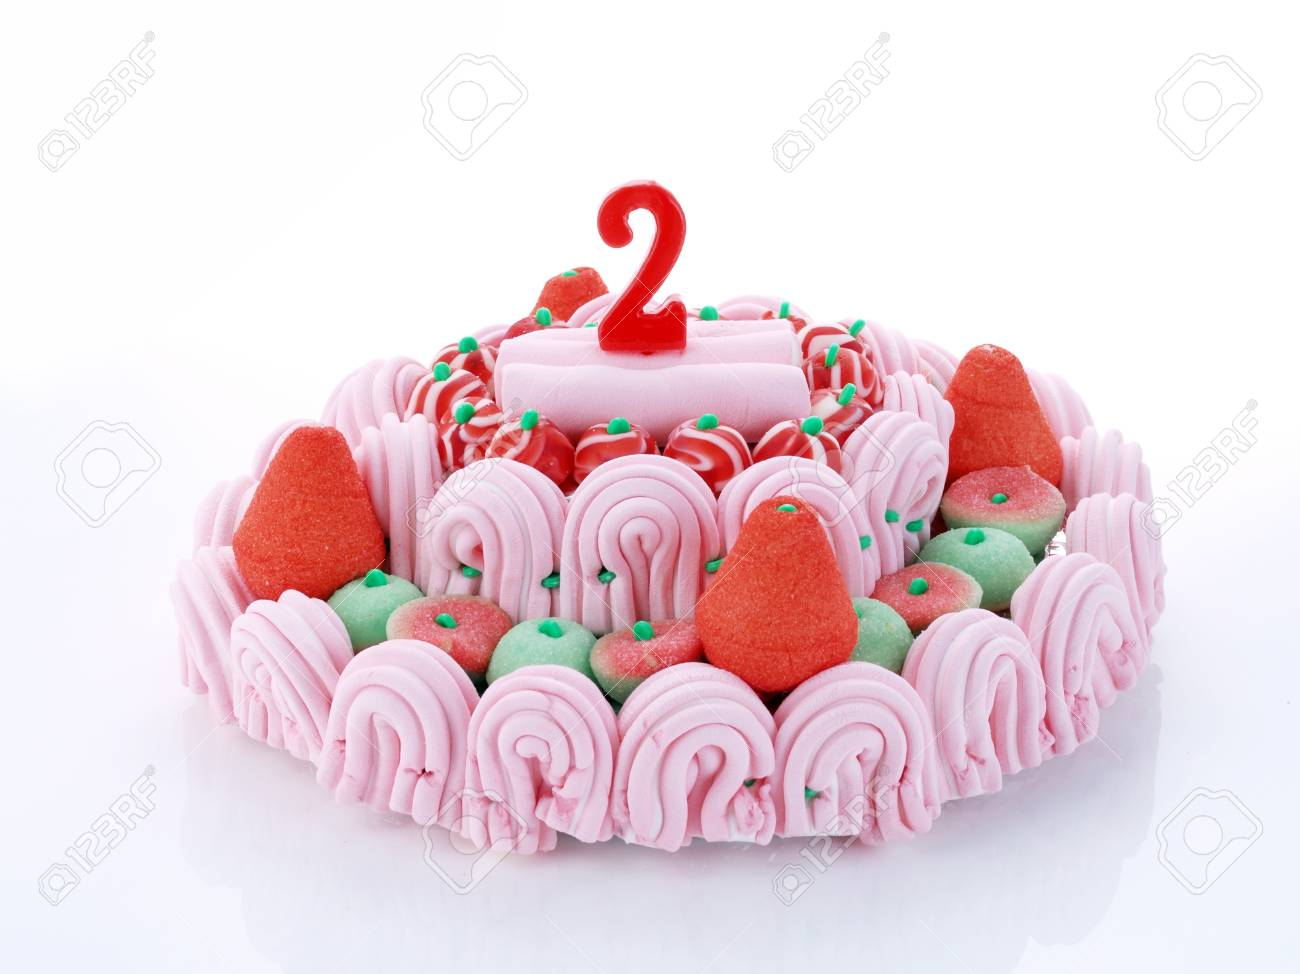 Birthday Cake With Red Candles Showing Nr 2 Stock Photo